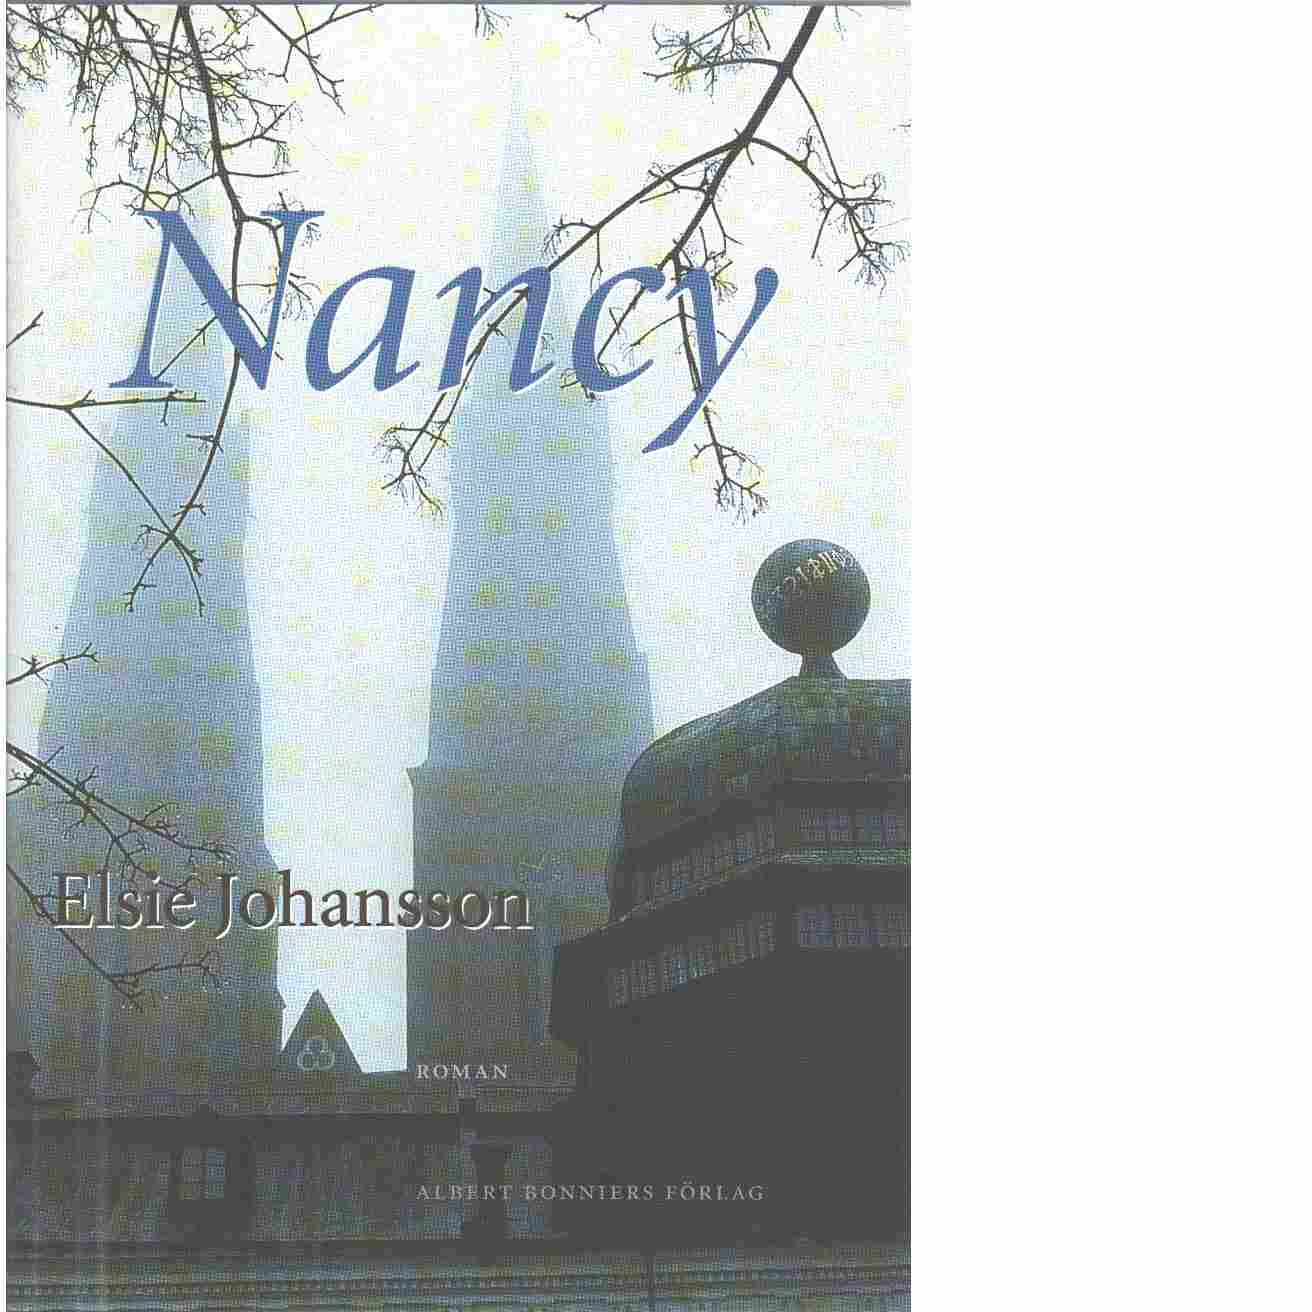 Nancy - Johansson, Elsie